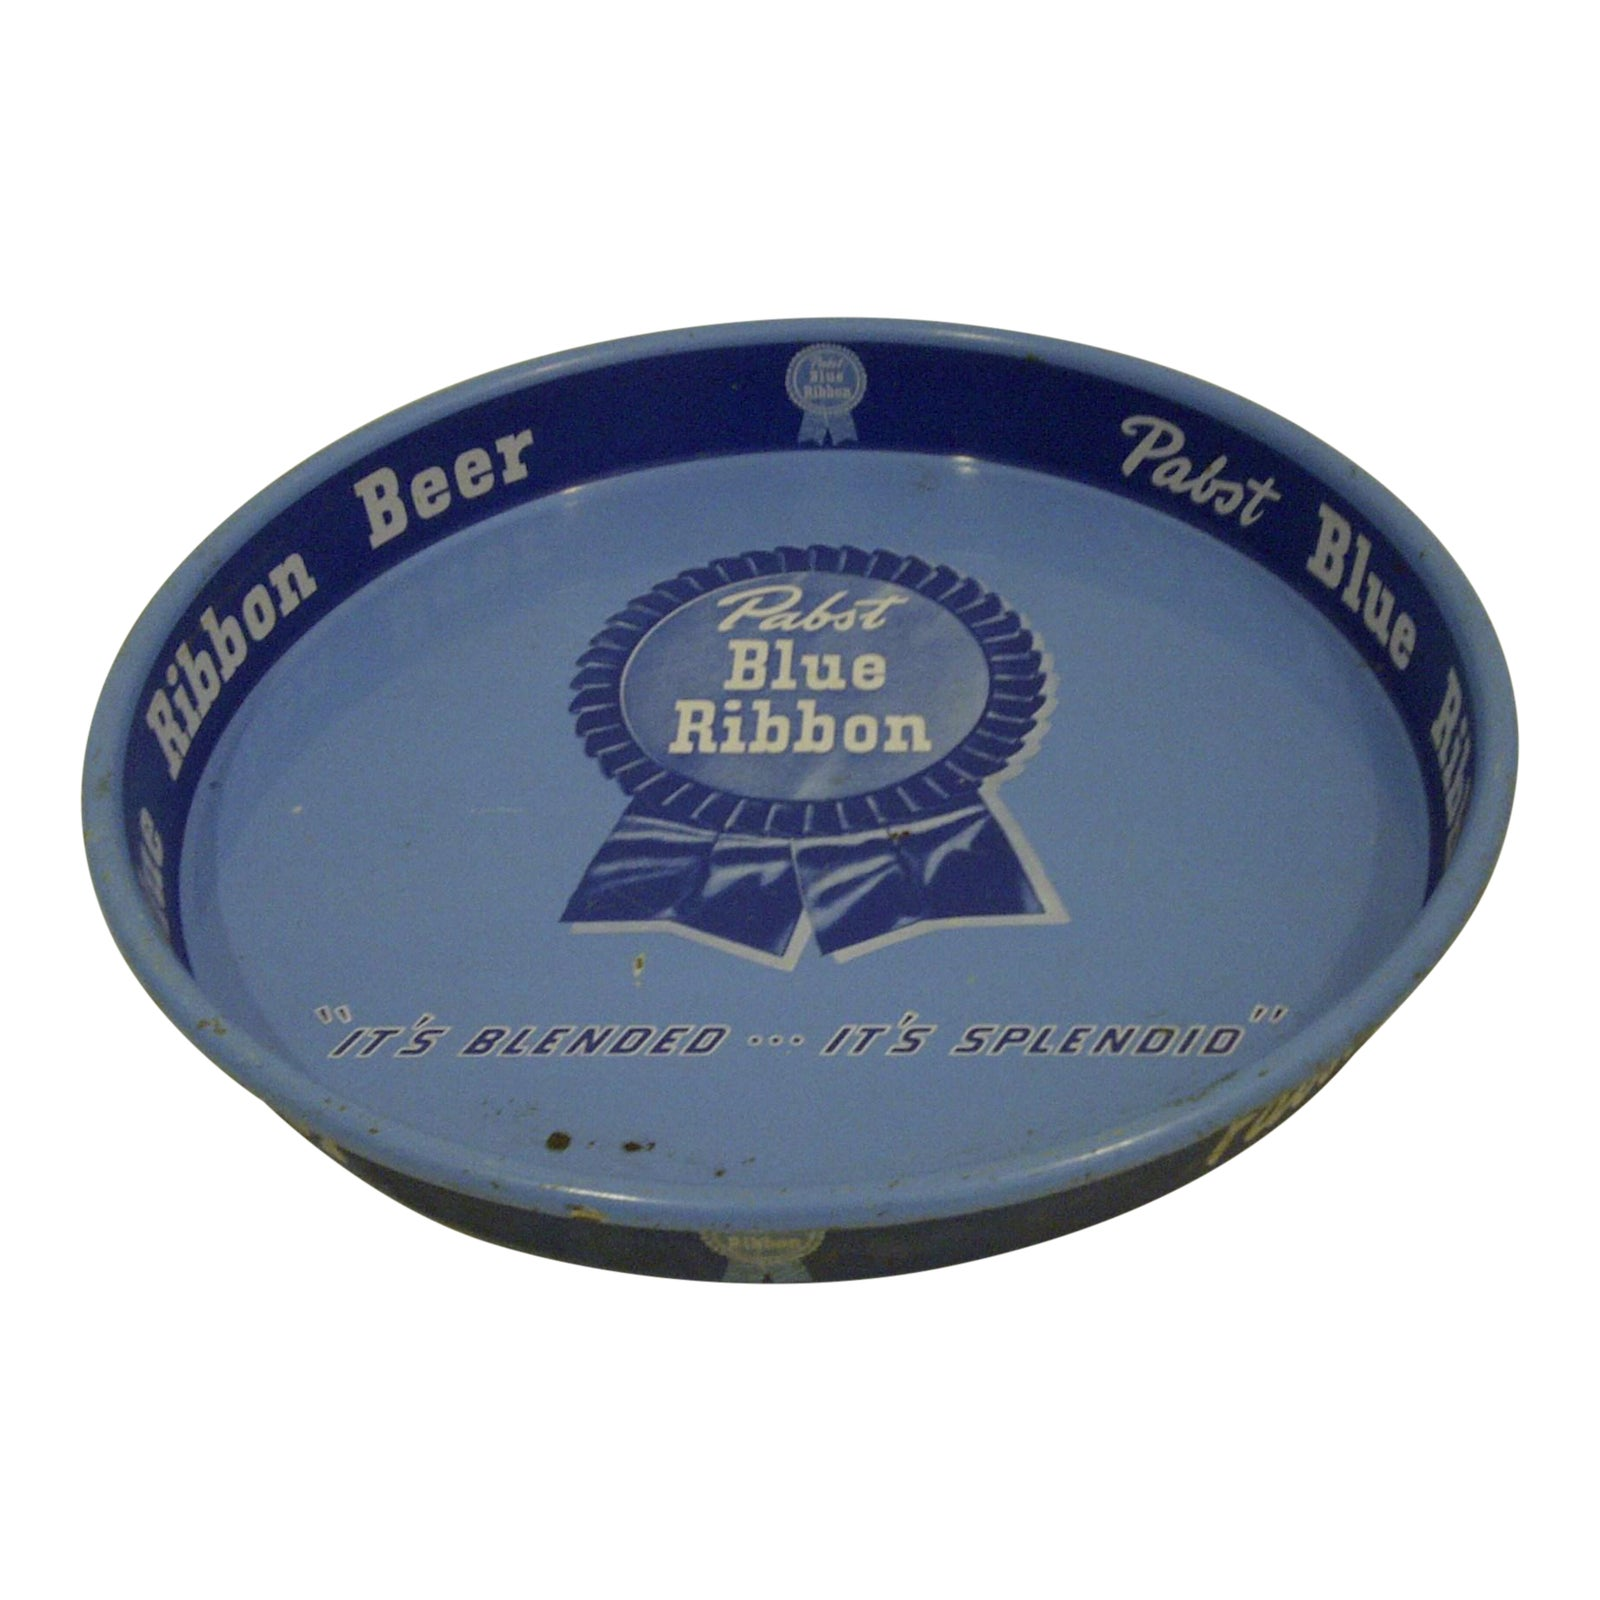 Vintage Quot Pabst Blue Ribbon Beer Quot Serving Tray Chairish